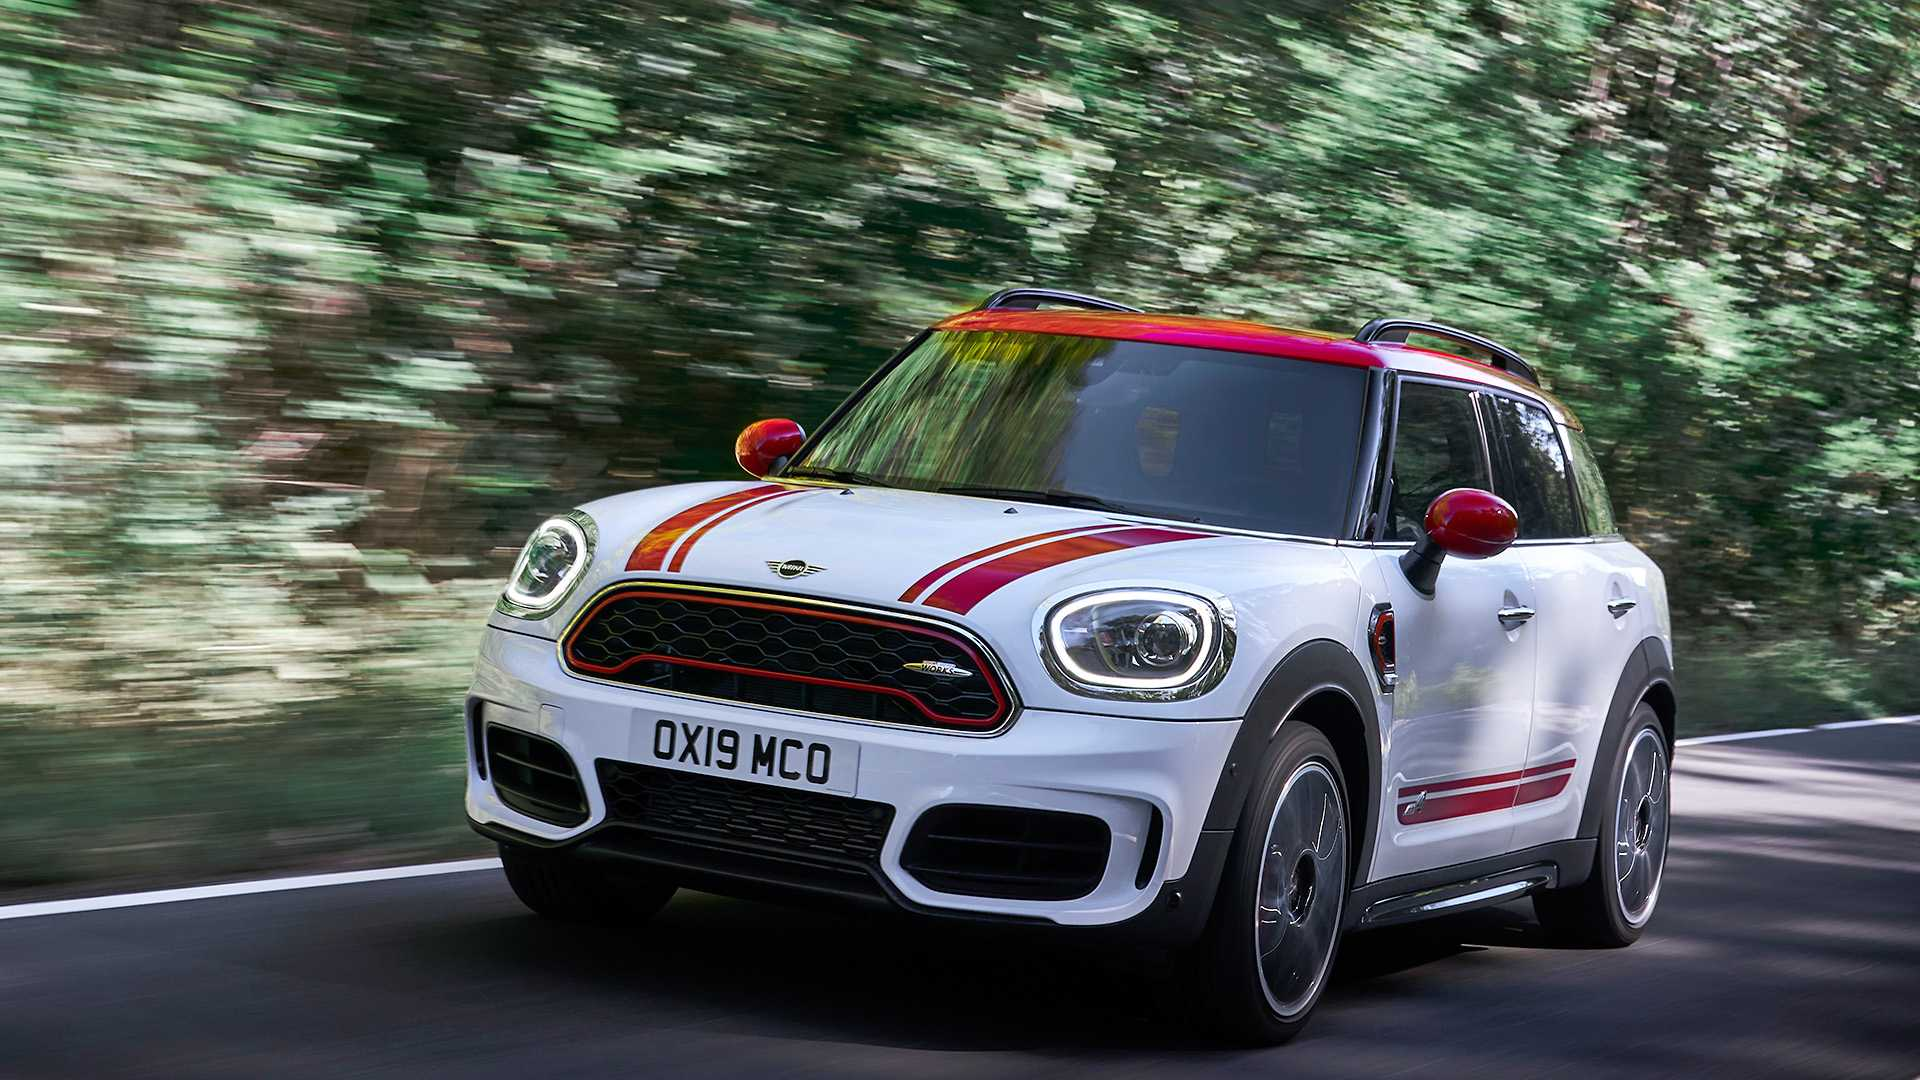 77 The Best 2020 Mini Cooper Countryman Overview